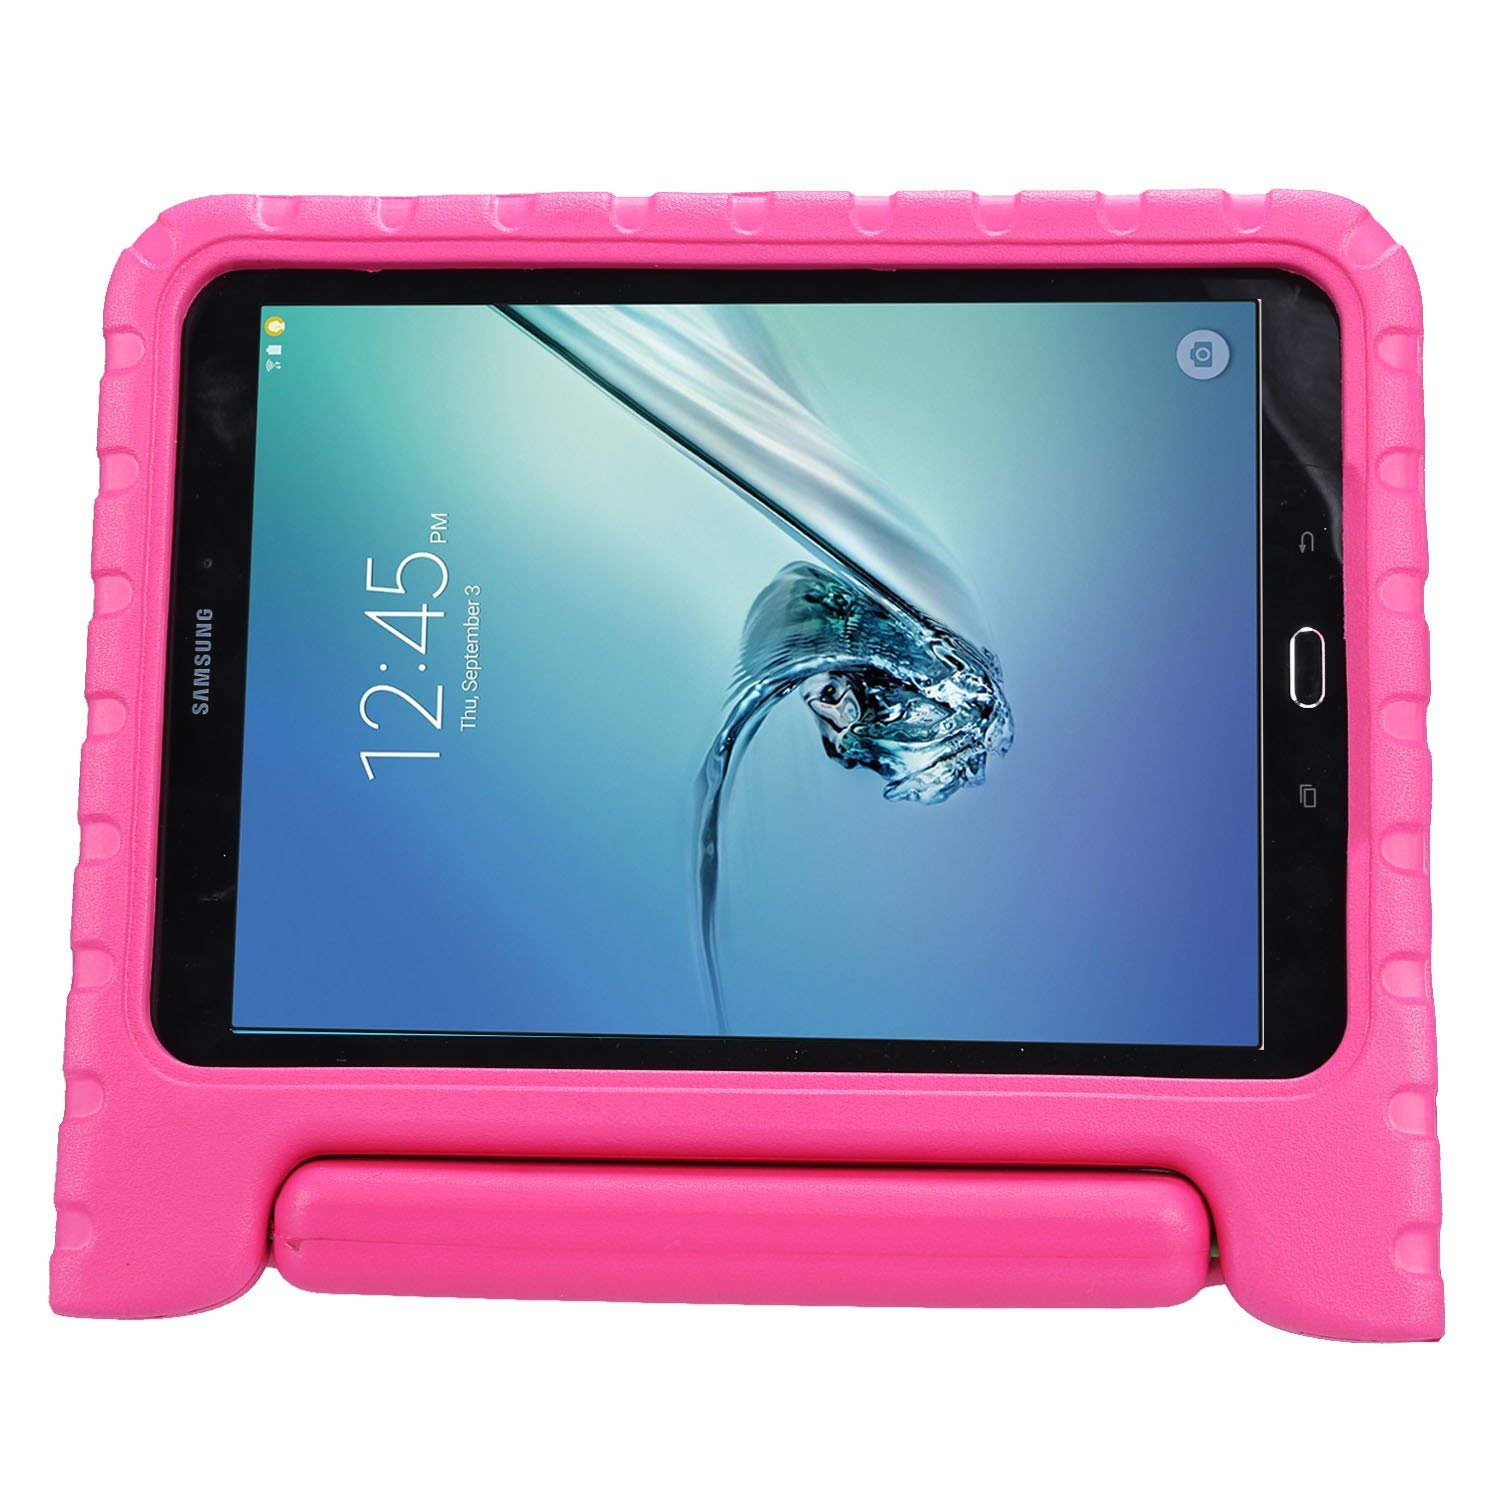 Samsung Galaxy Tab S2 9.7 inch Case Shockproof Case Handle Stand Protection Cover For Kids Children Light Weight